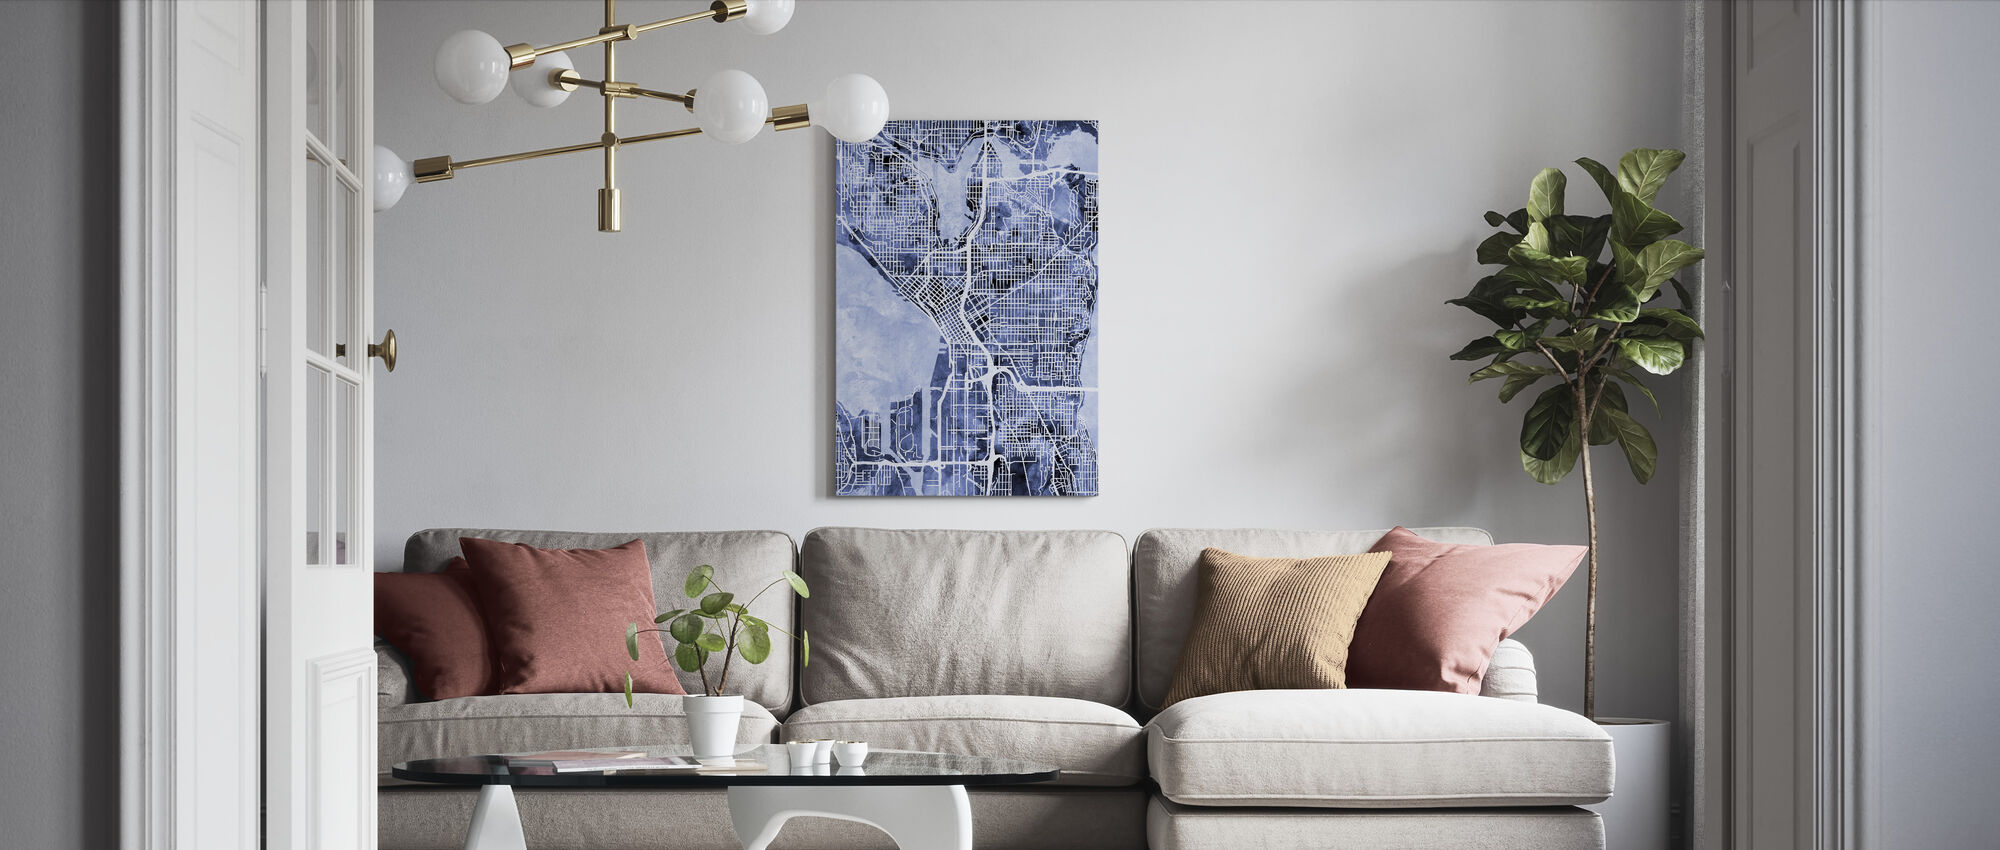 Seattle Washington Street Kaart - Canvas print - Woonkamer